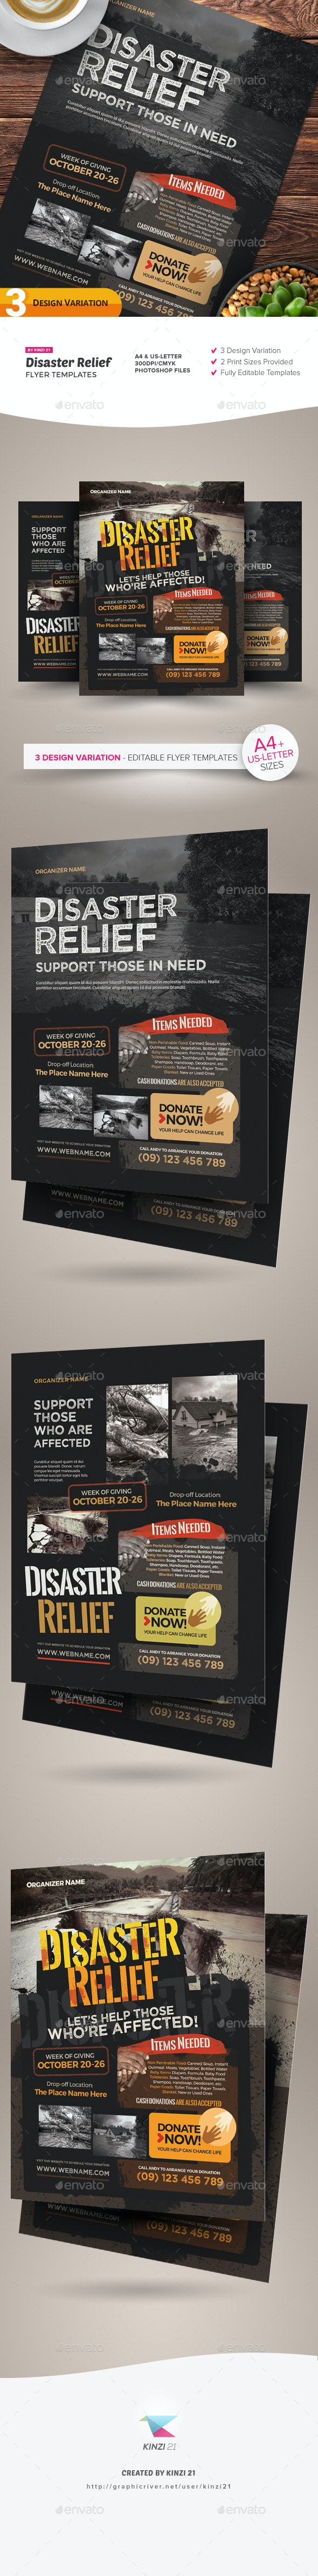 Disaster Relief Flyer Templates - Miscellaneous Events